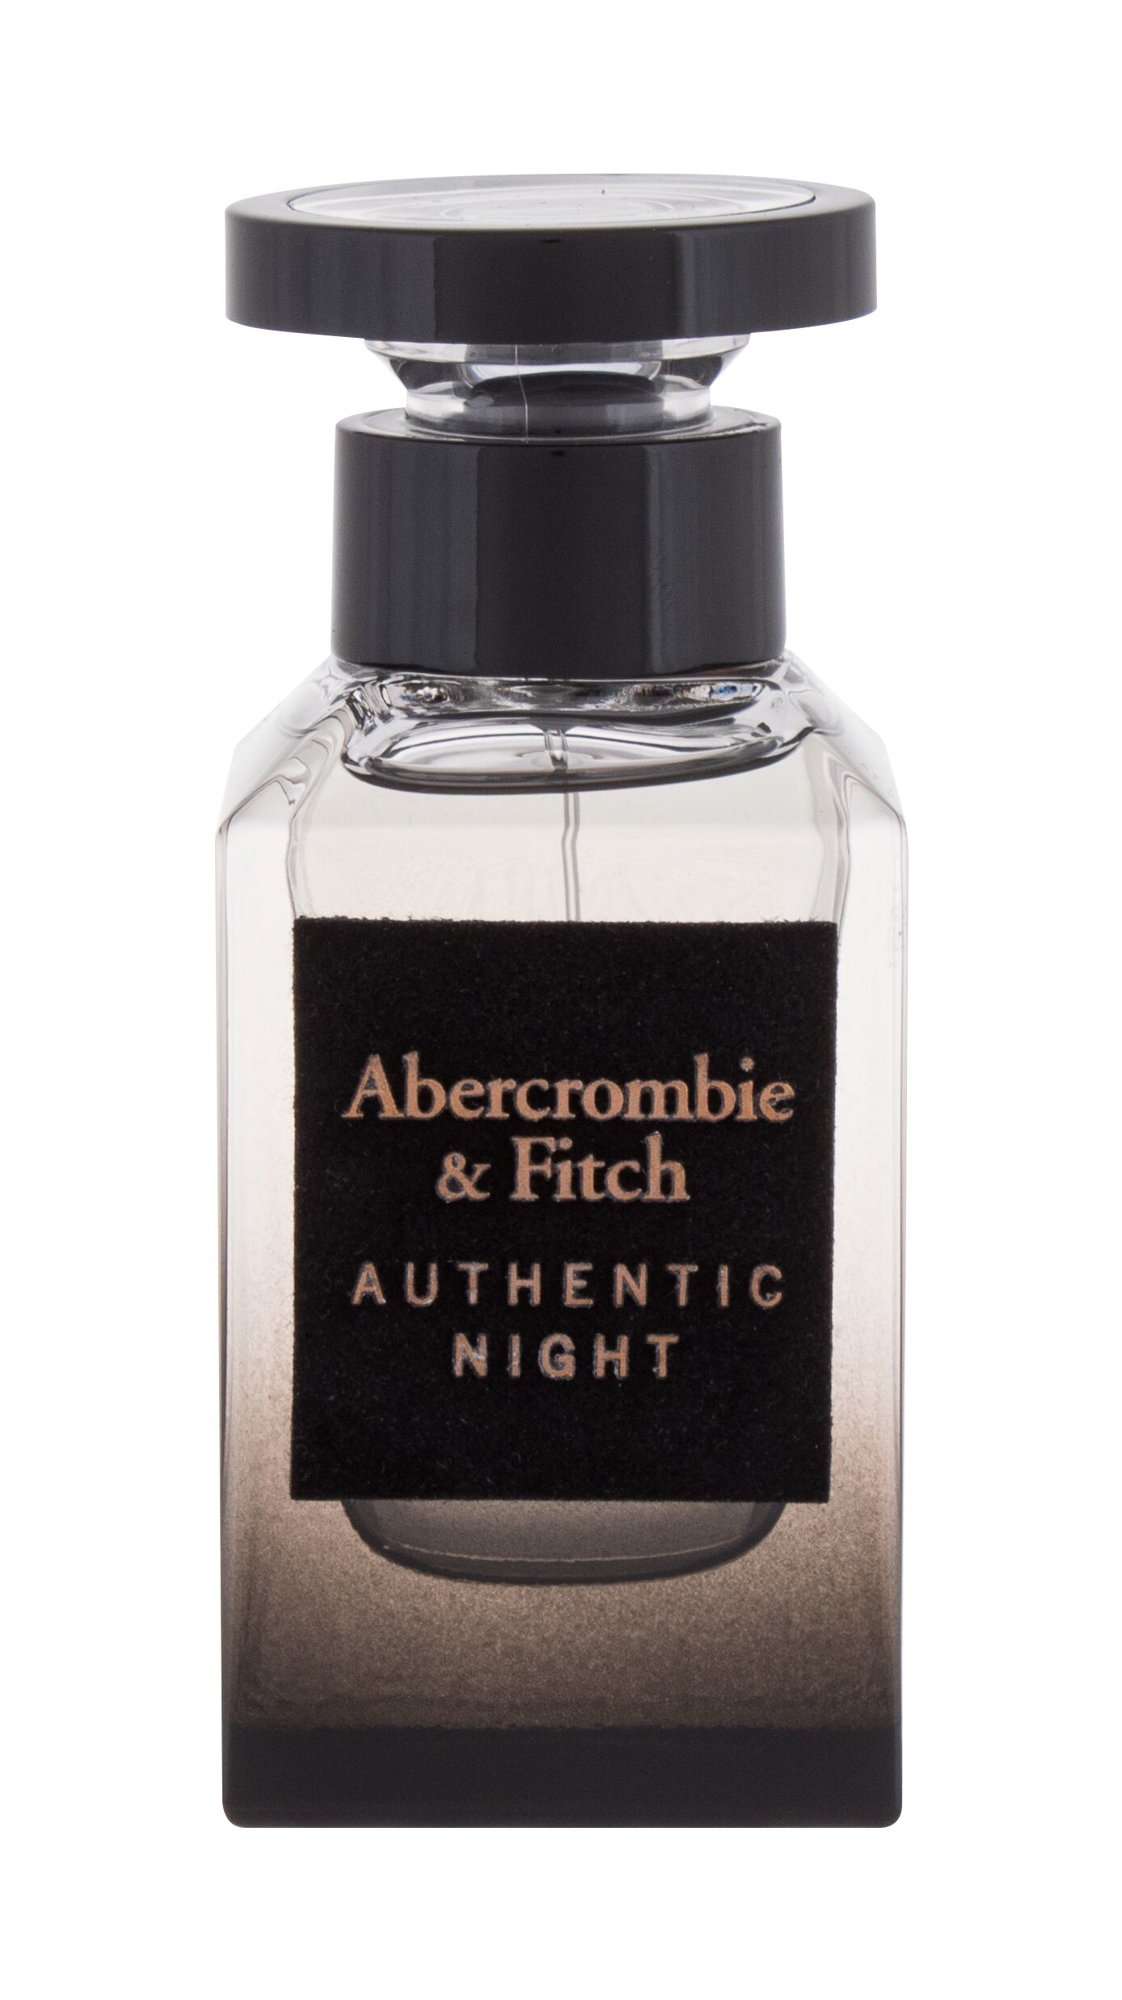 Abercrombie & Fitch Authentic Night, edt 50ml